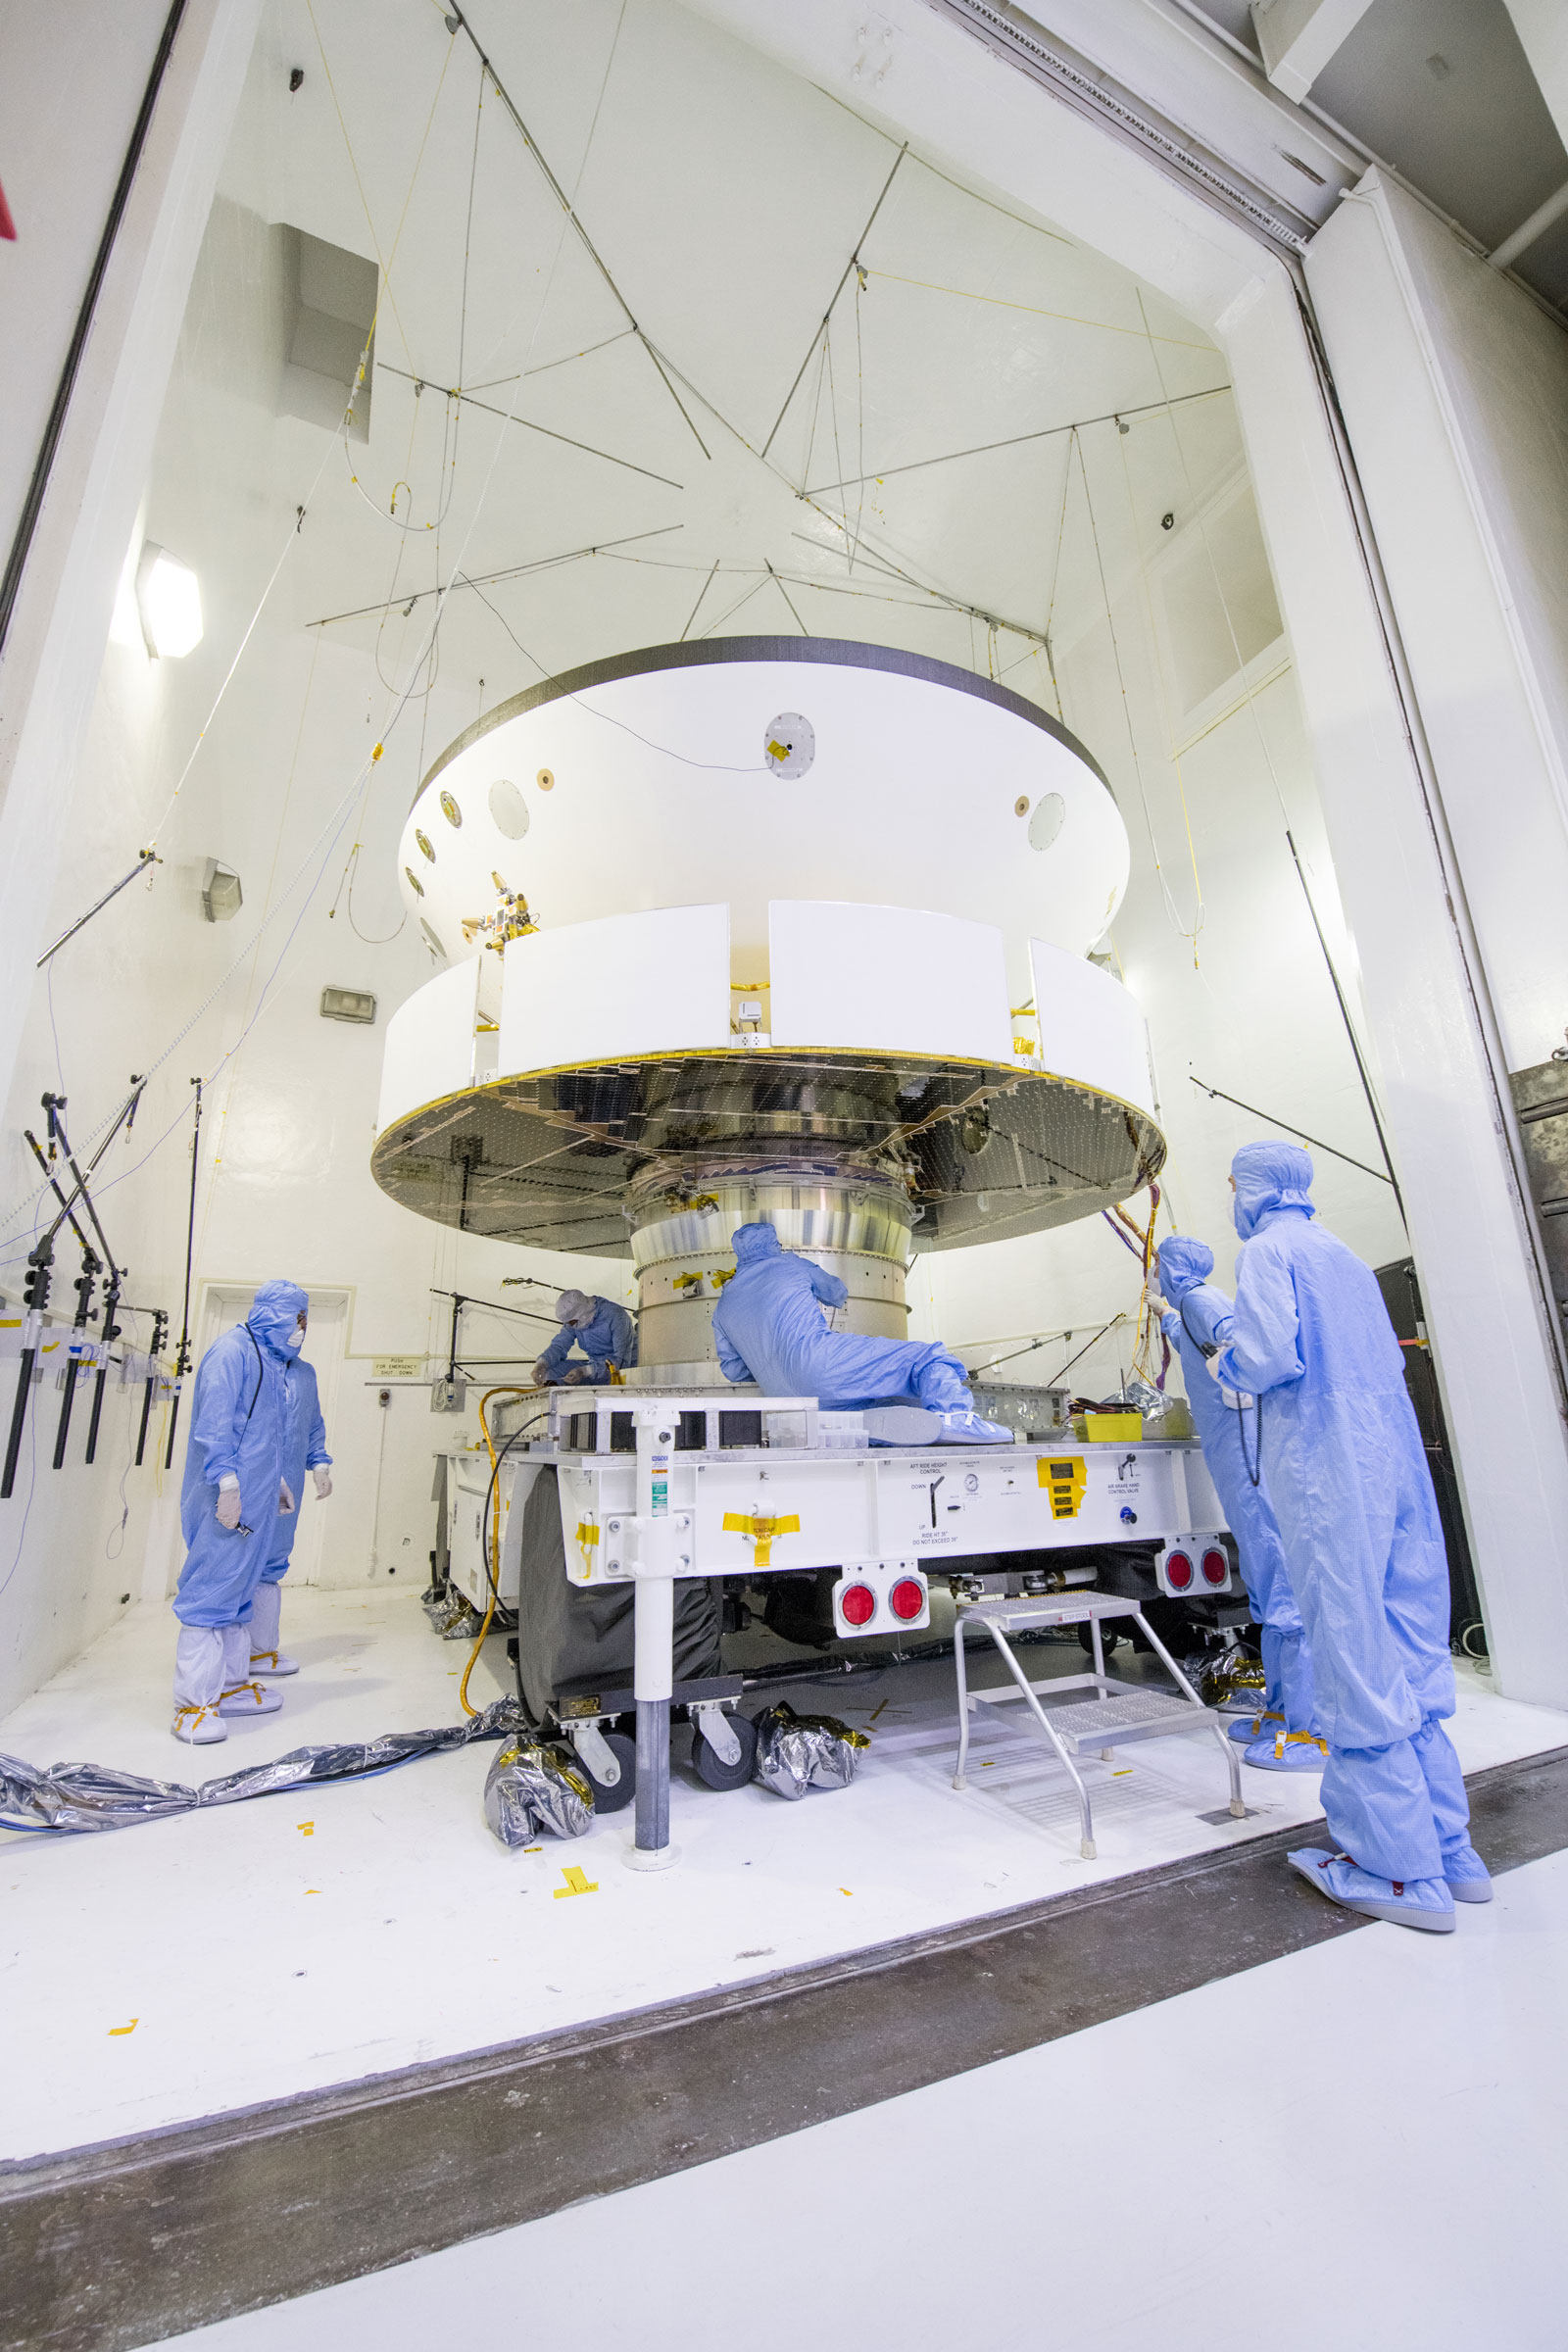 NASA's Mars 2020 spacecraft undergoes examination prior to an acoustic test in the Environmental Test Facility at NASA's Jet Propulsion Laboratory in Pasadena, California.